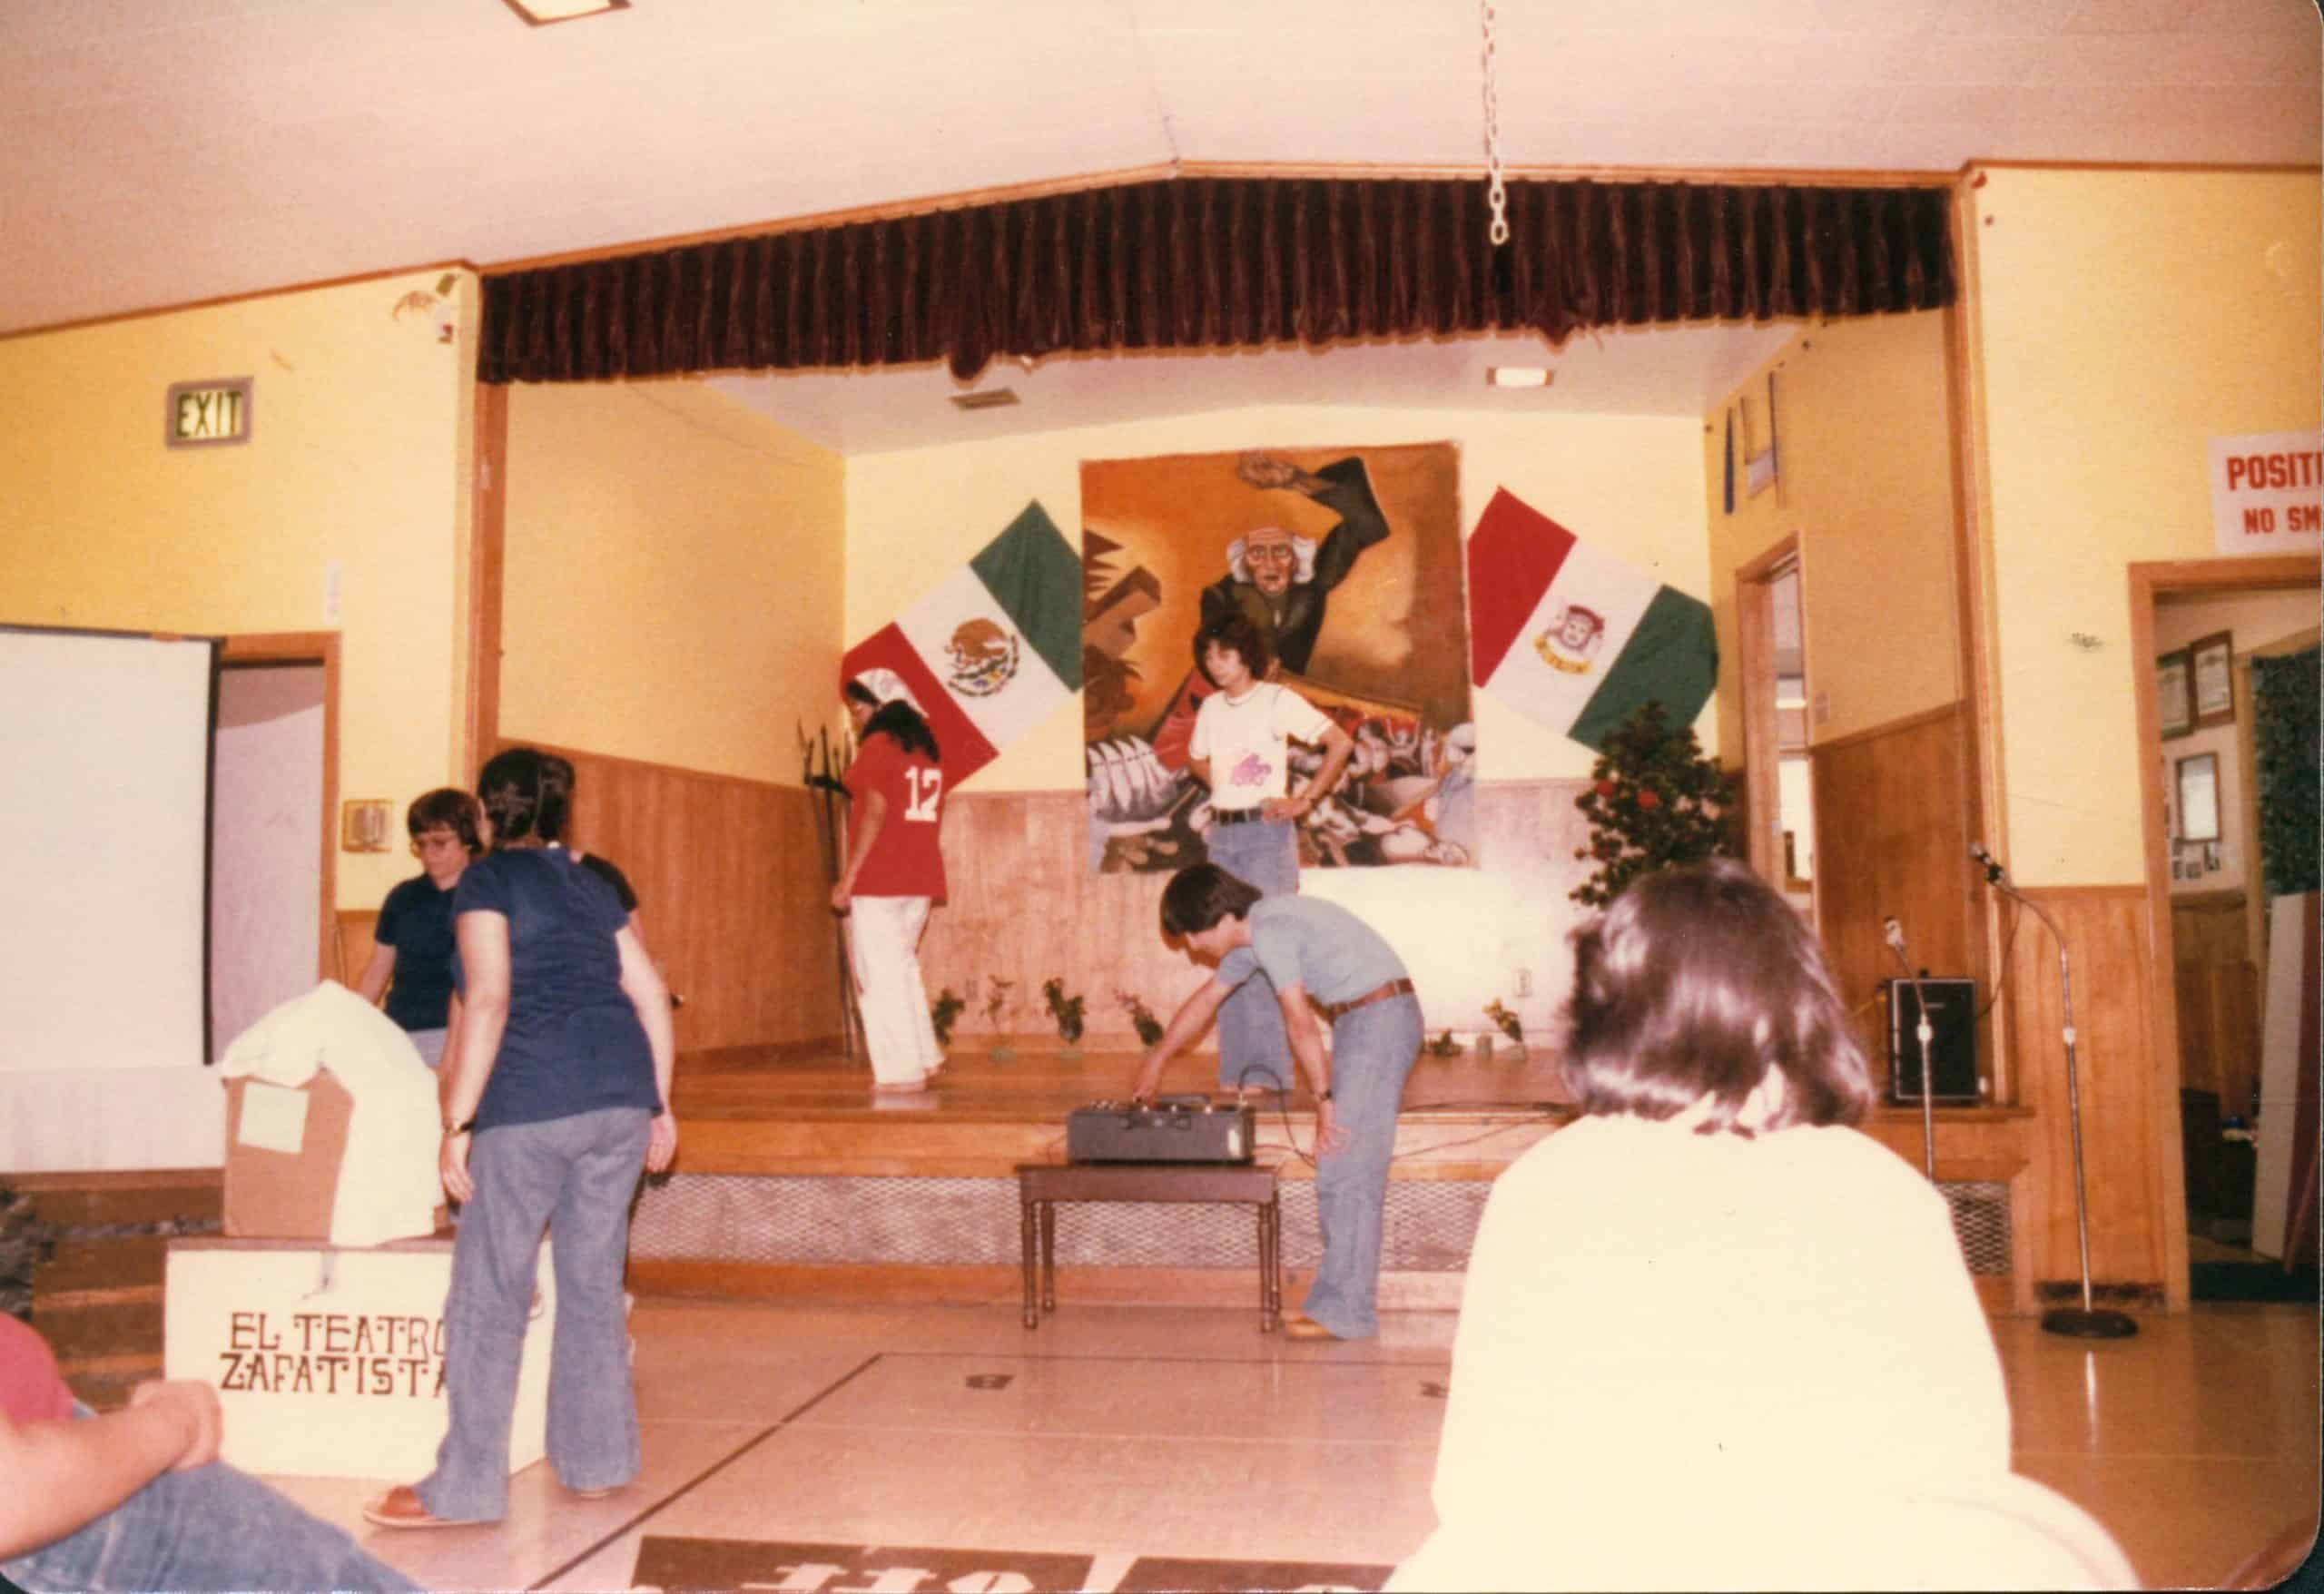 Students setting up on stage in preparation for a performance.